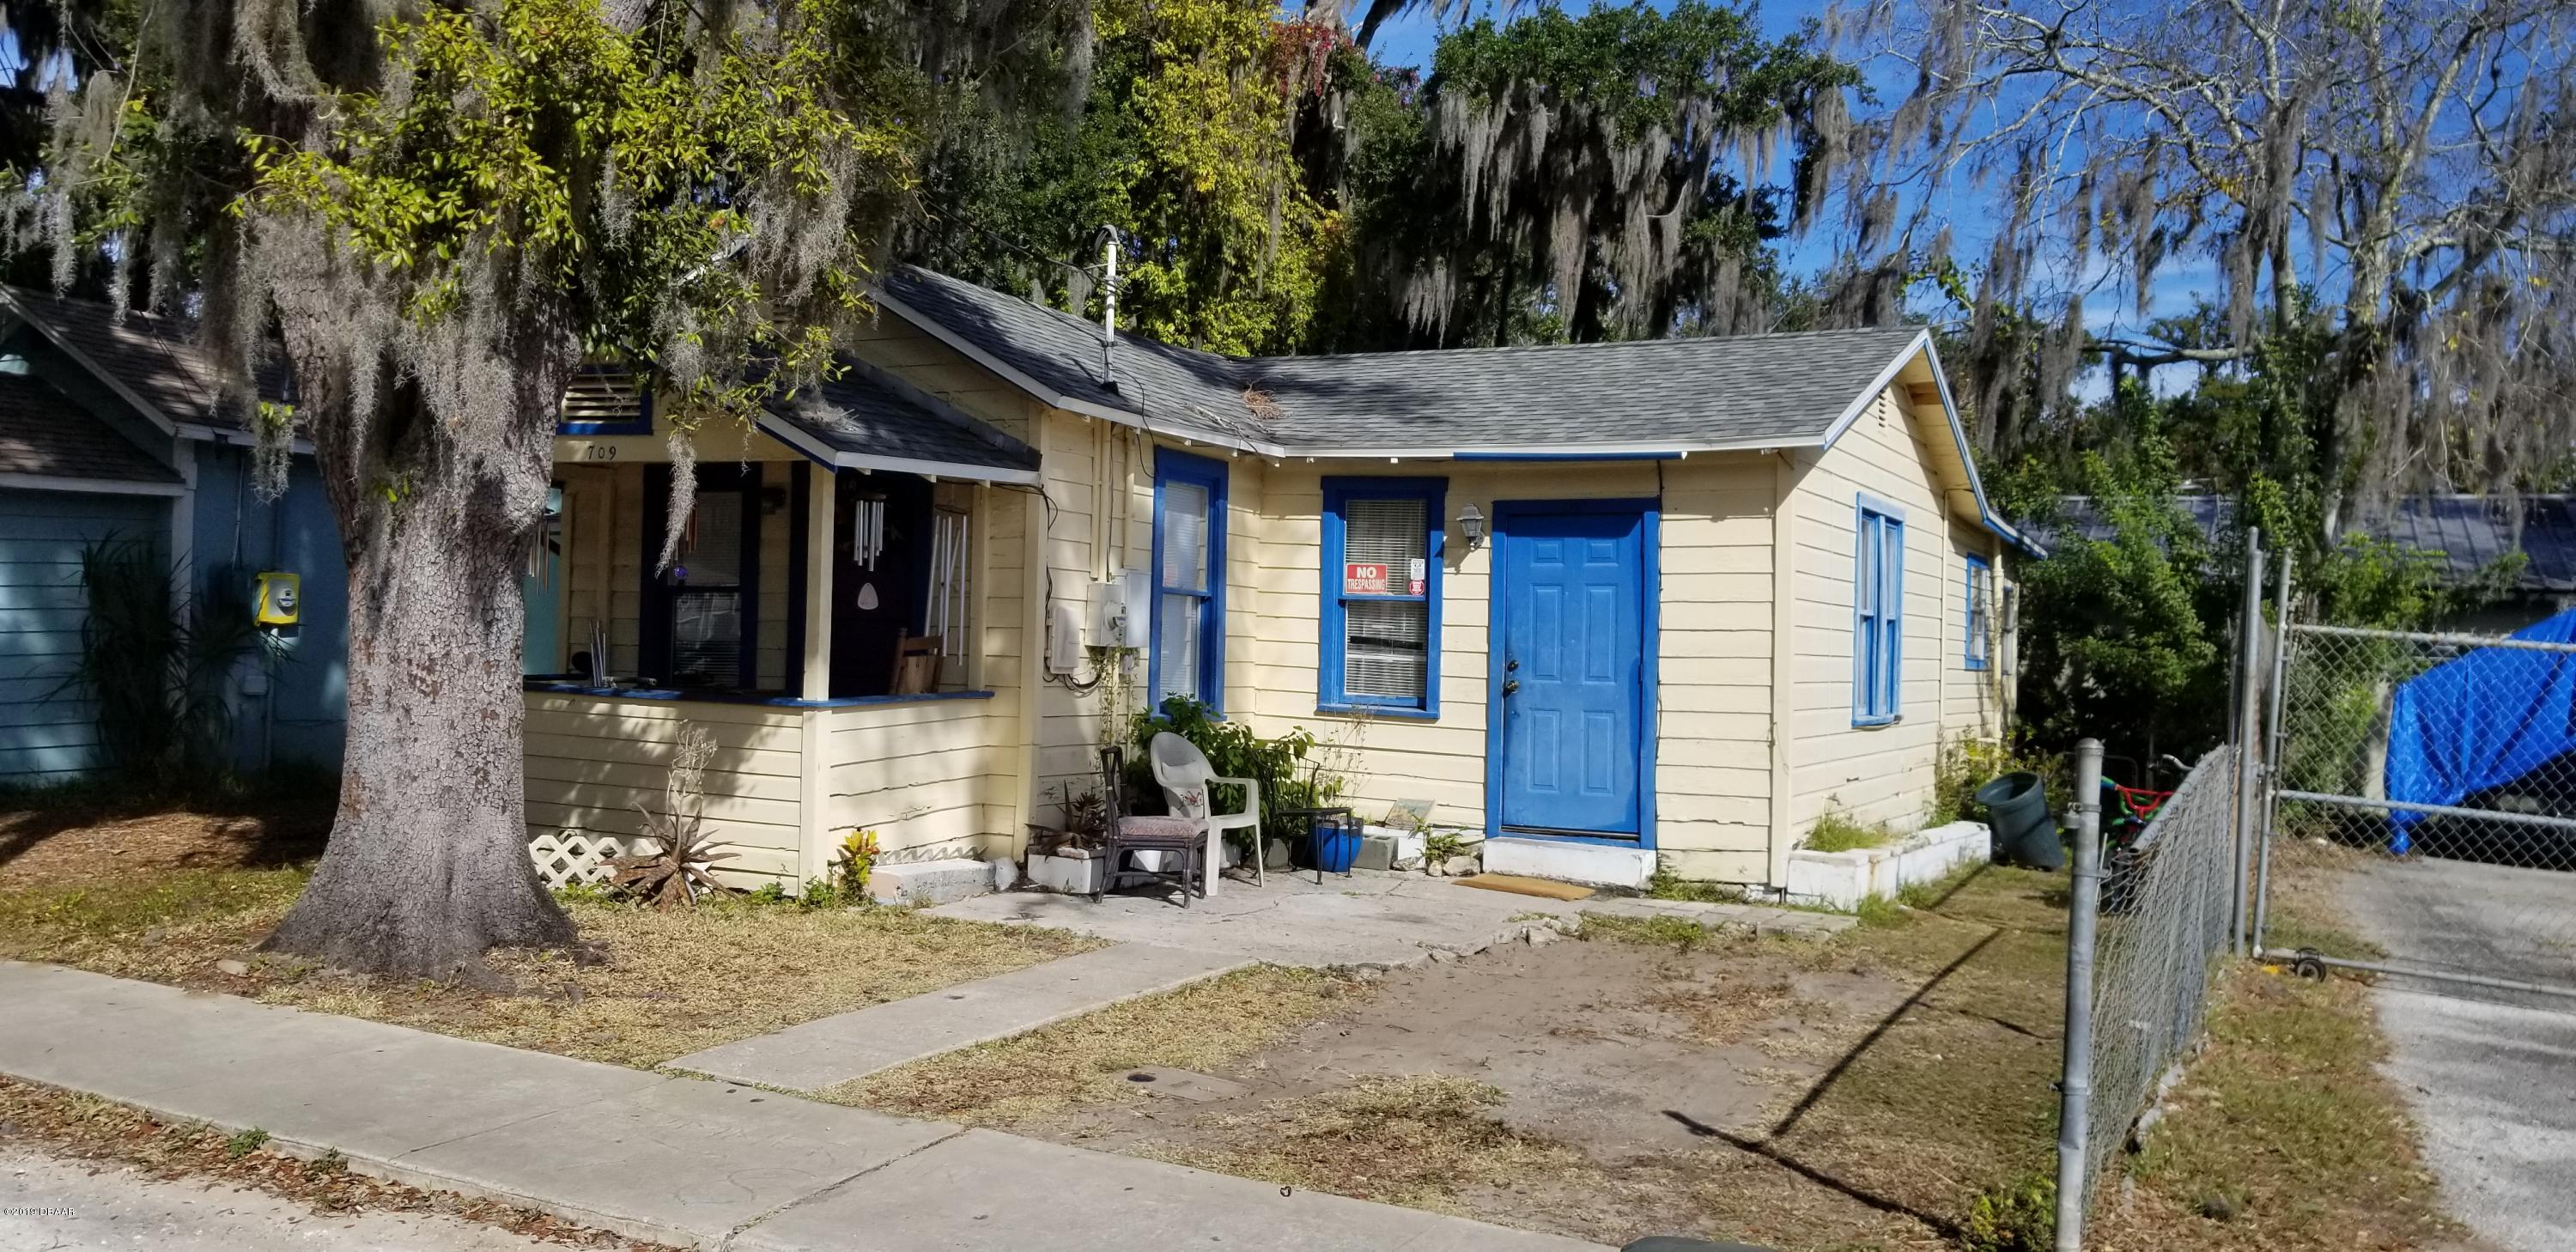 709 Mulberry Daytona Beach - 1